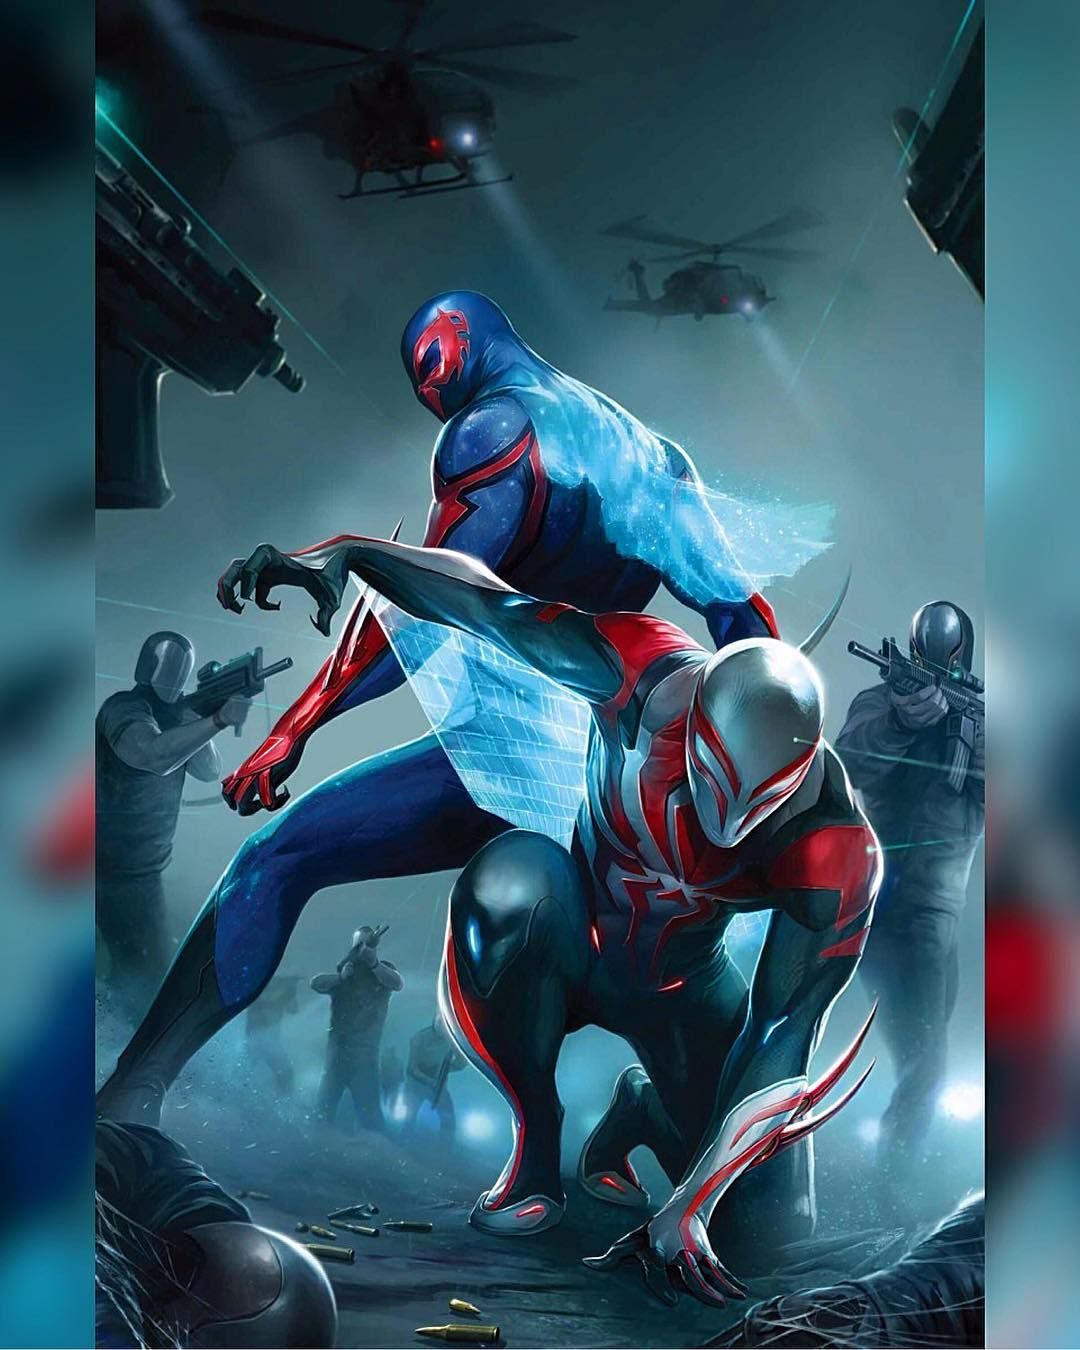 I love SpiderMan 2099 new costume over the old one